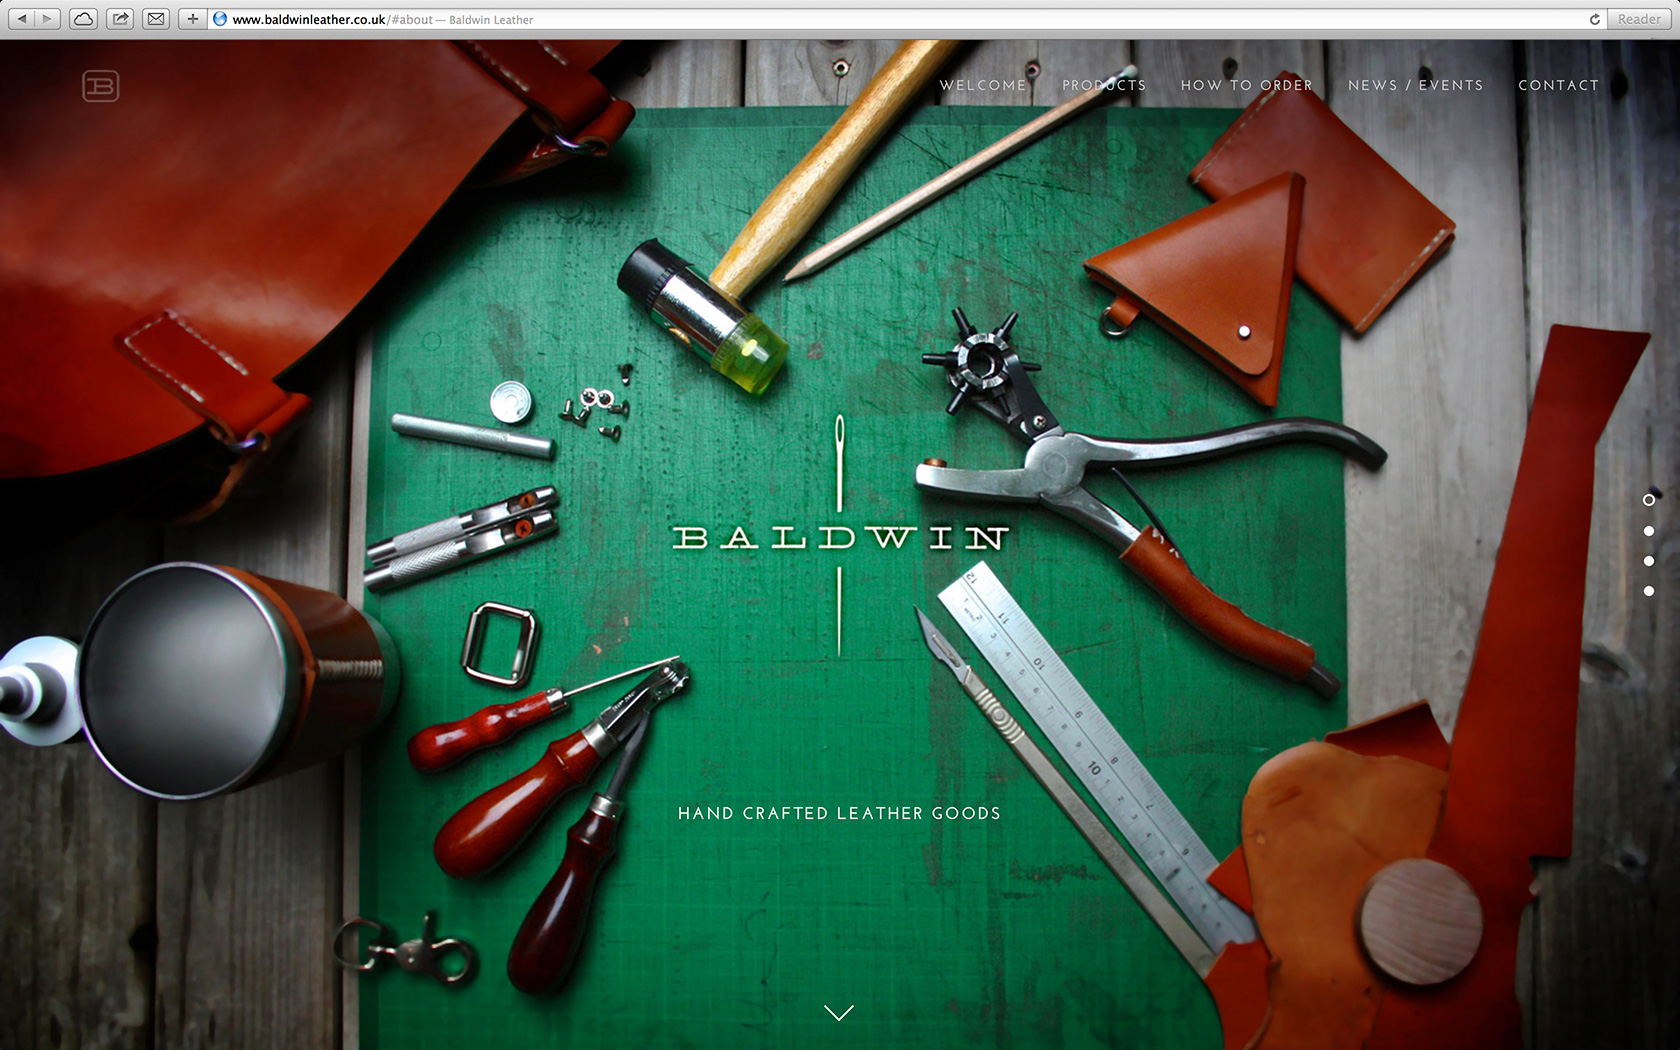 Baldwin Leather